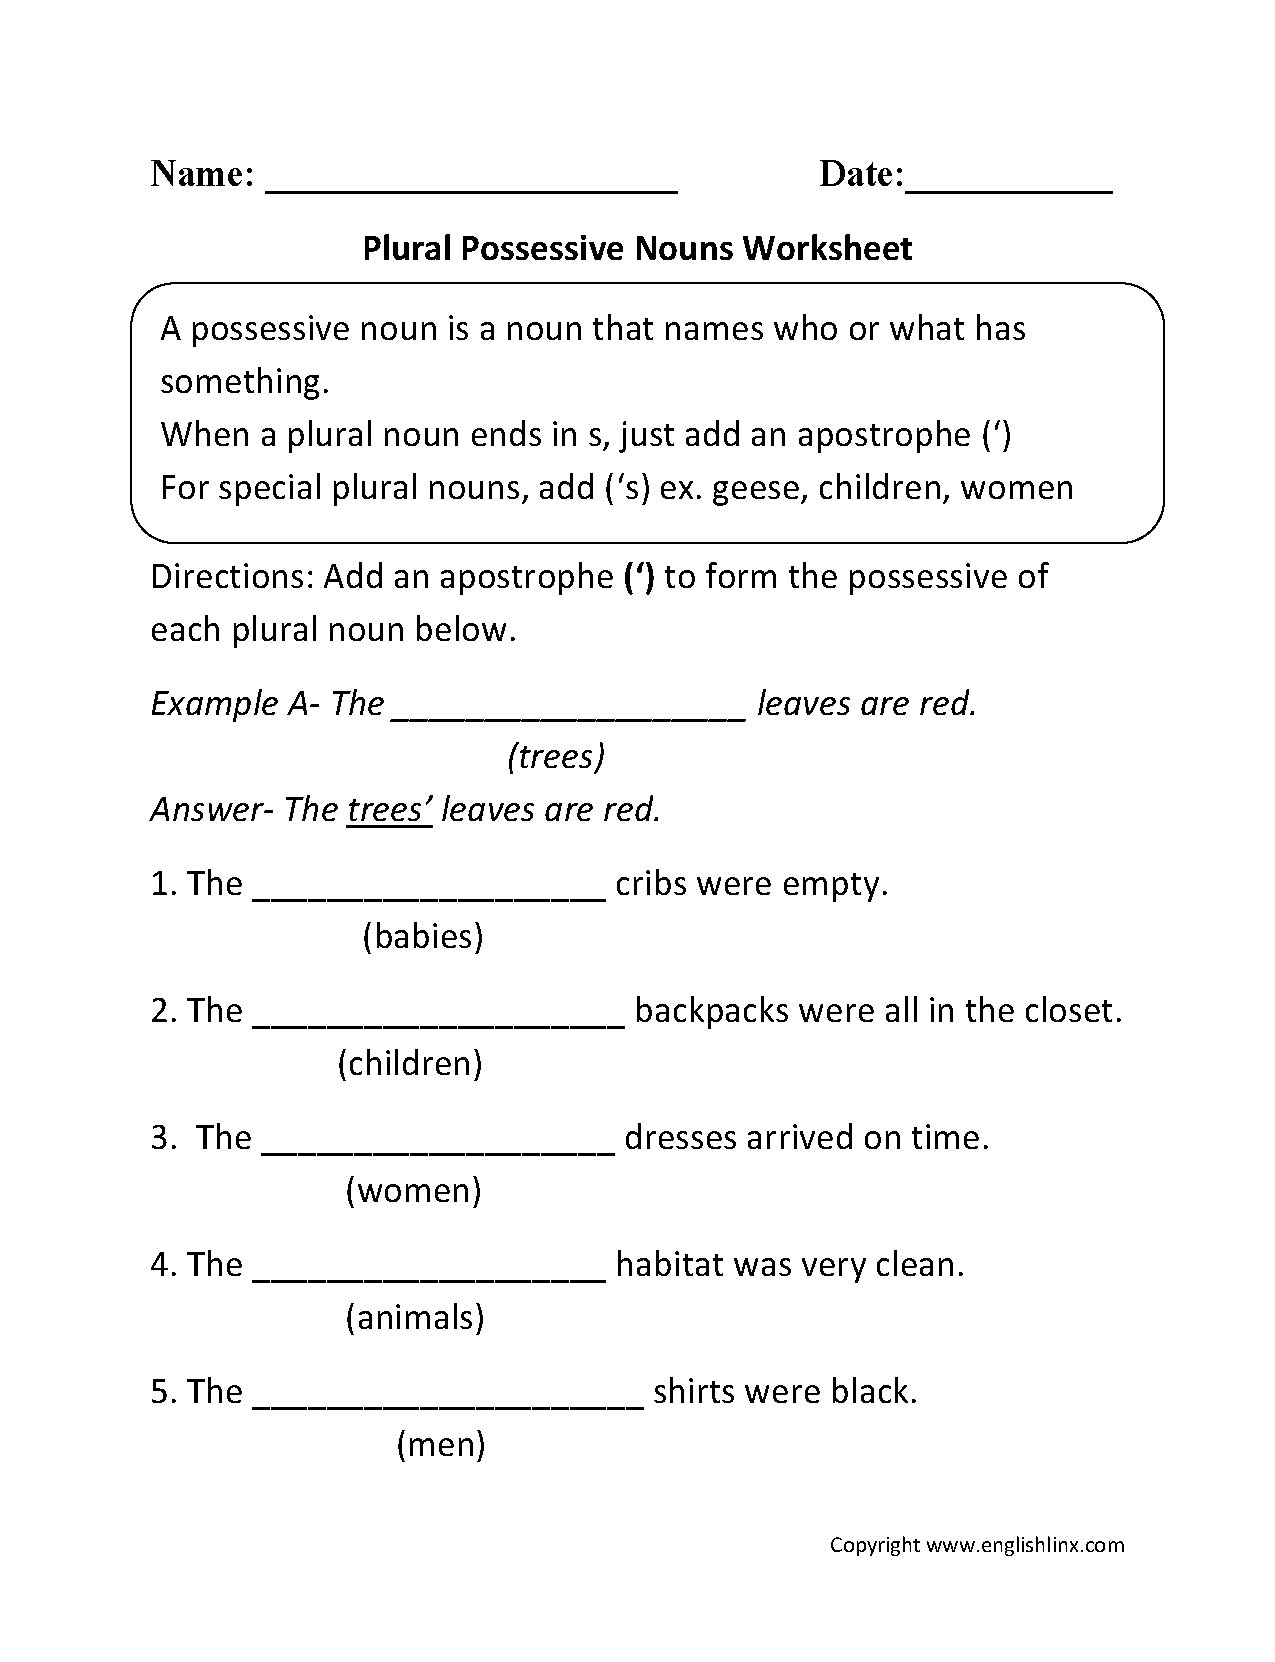 Printables Possessive Nouns Worksheets possessive nouns worksheets plural worksheets